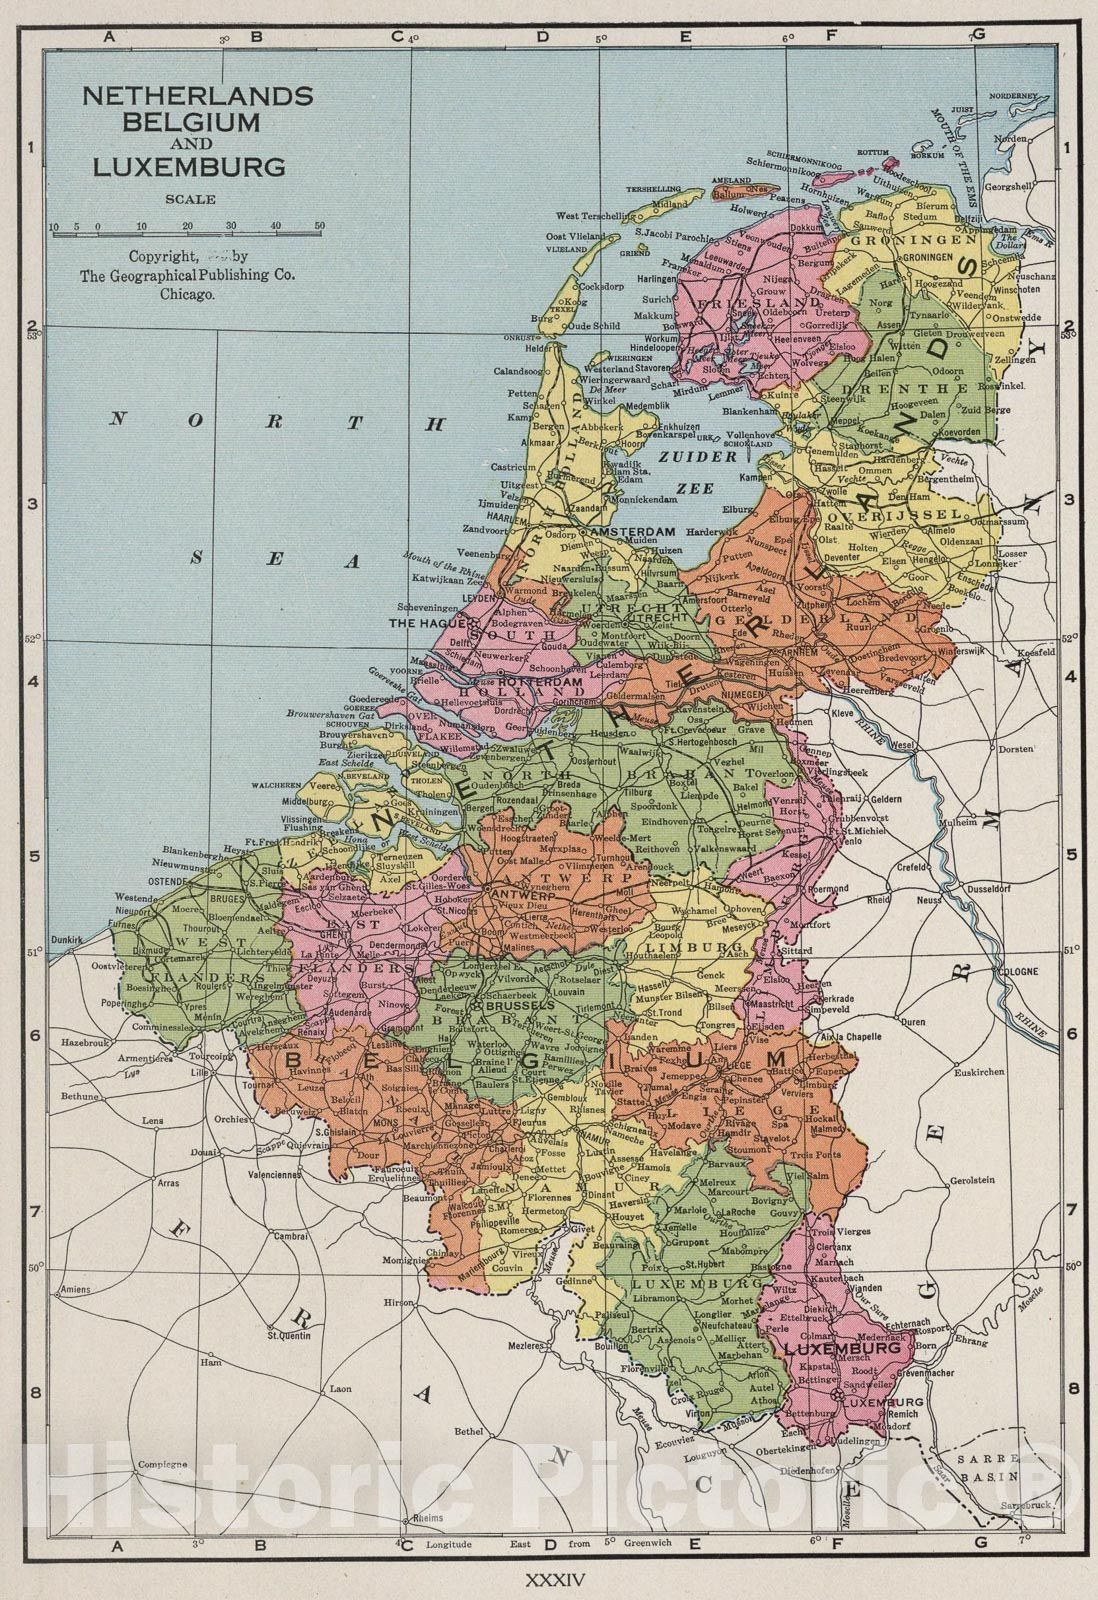 <p>Netherlands, Belgium, and Luxemburg., 1925</p>